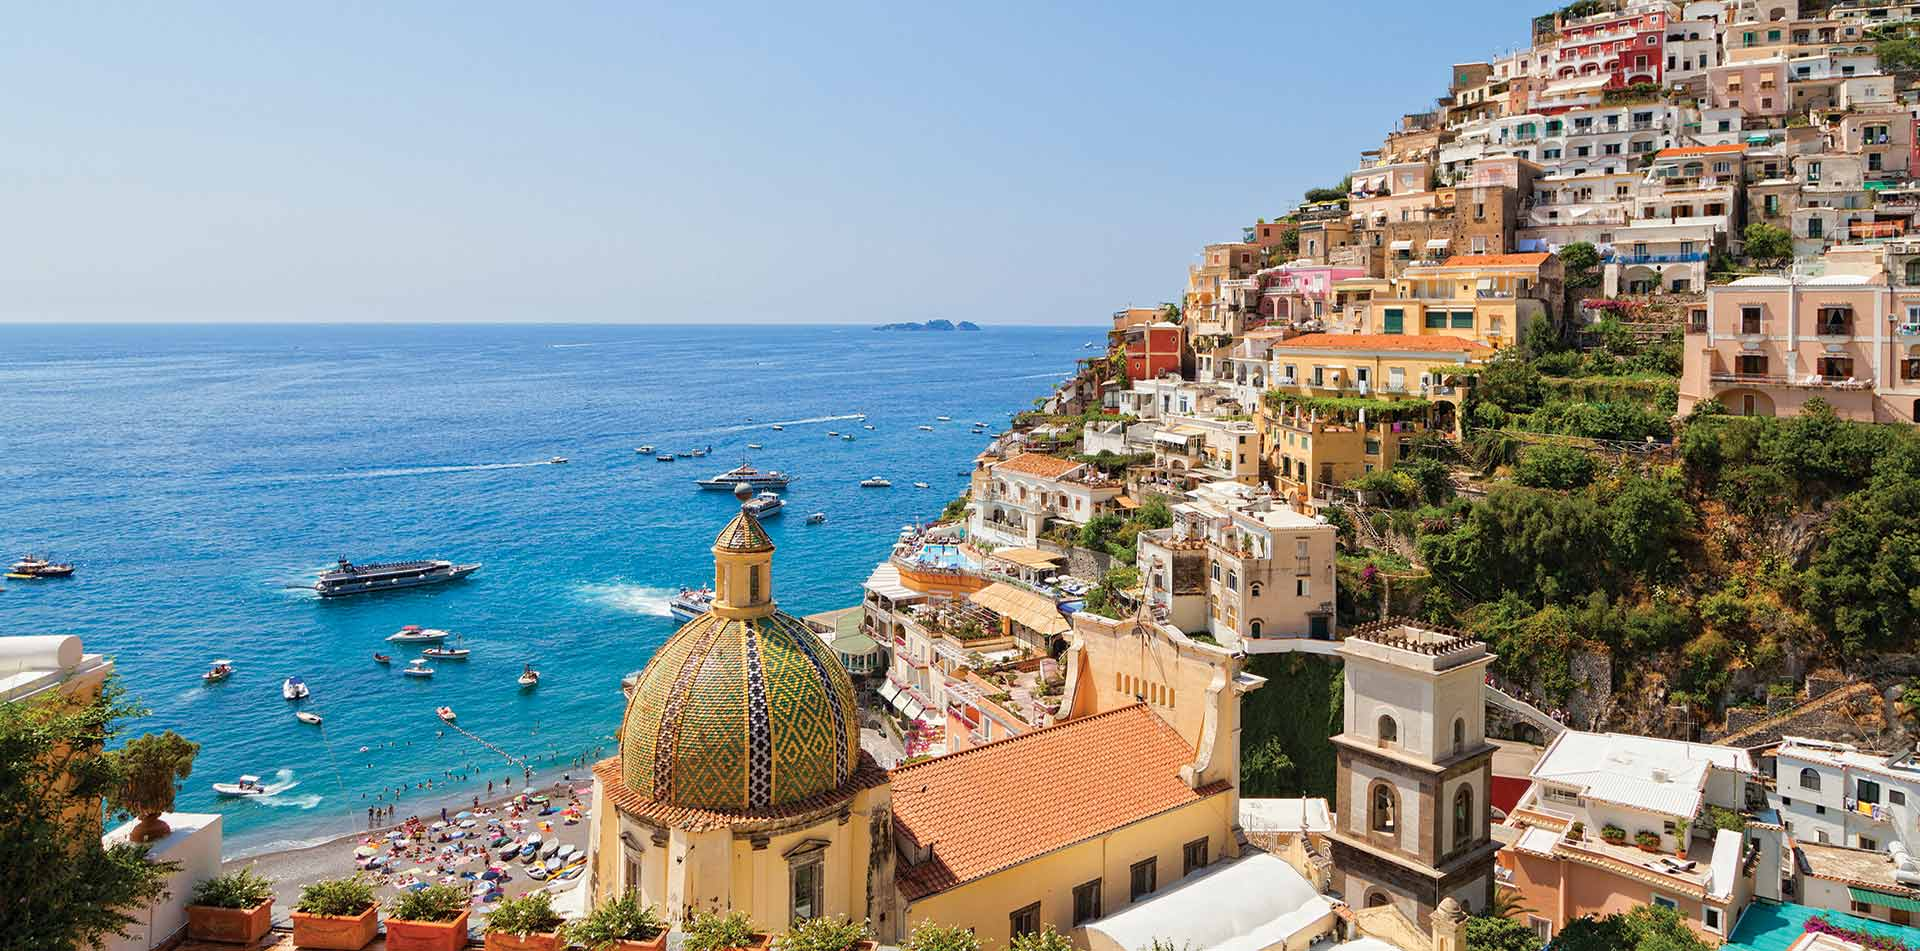 View of Ocean from Positano, Italy